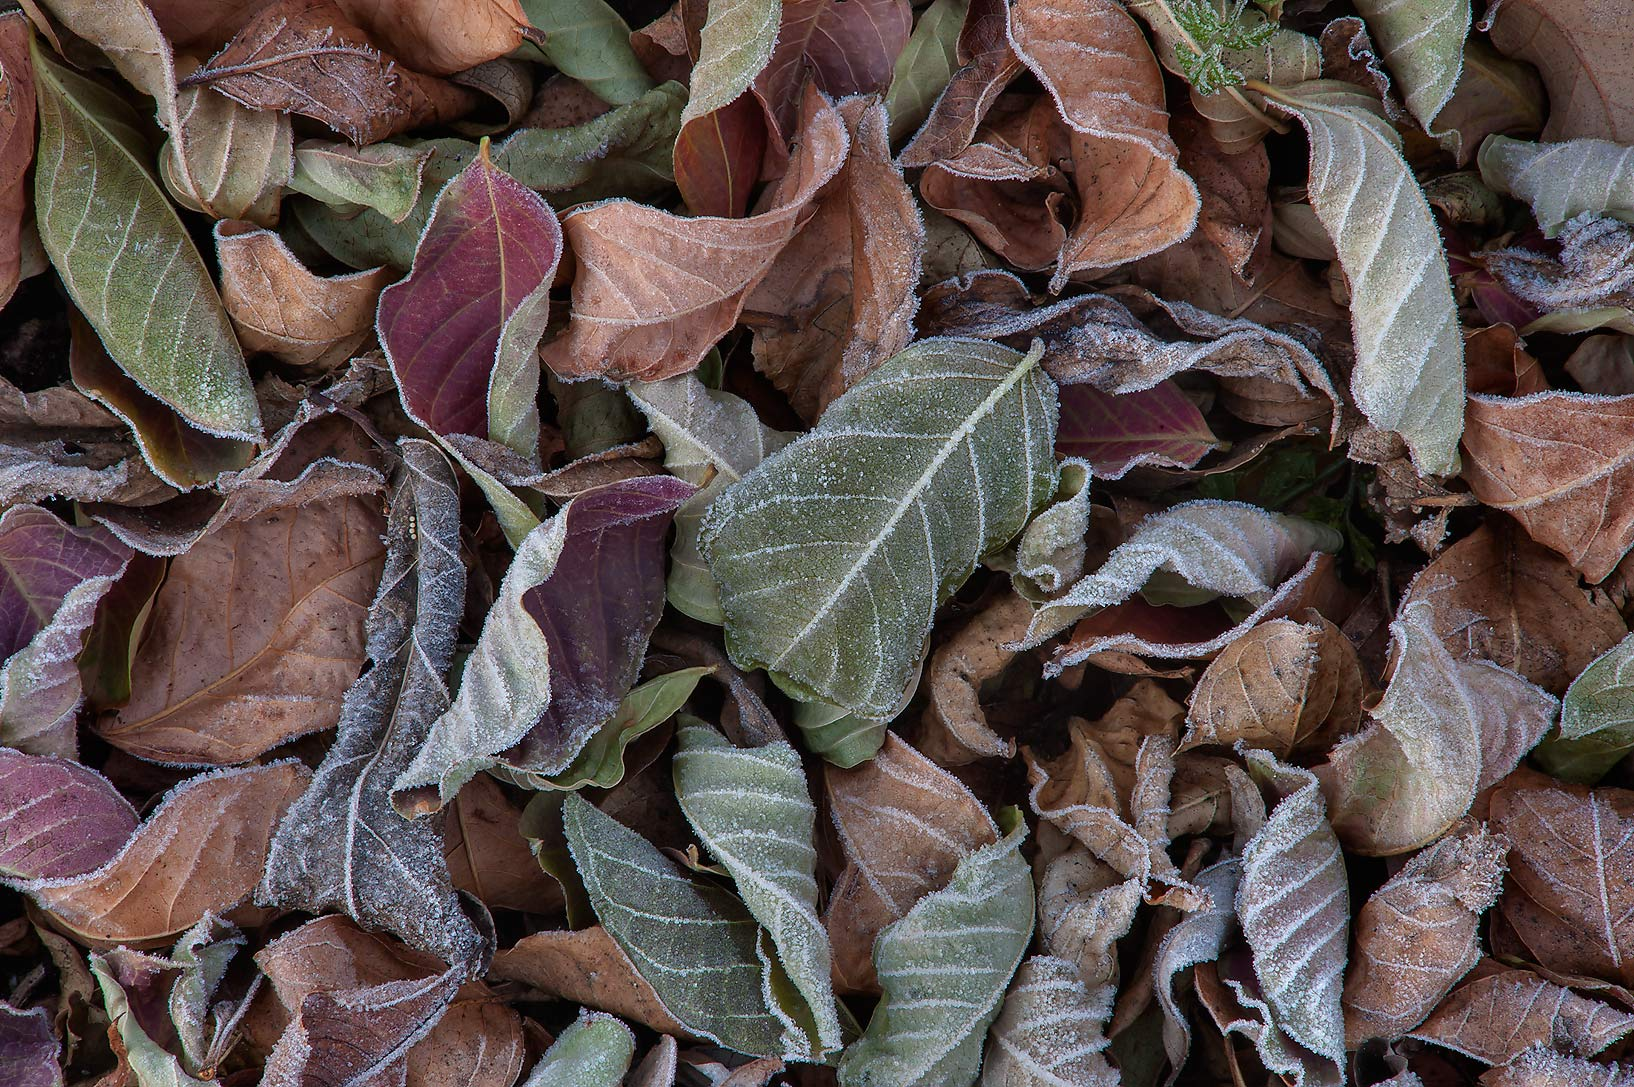 Pile of dry leaves in freeze in TAMU...M University. College Station, Texas